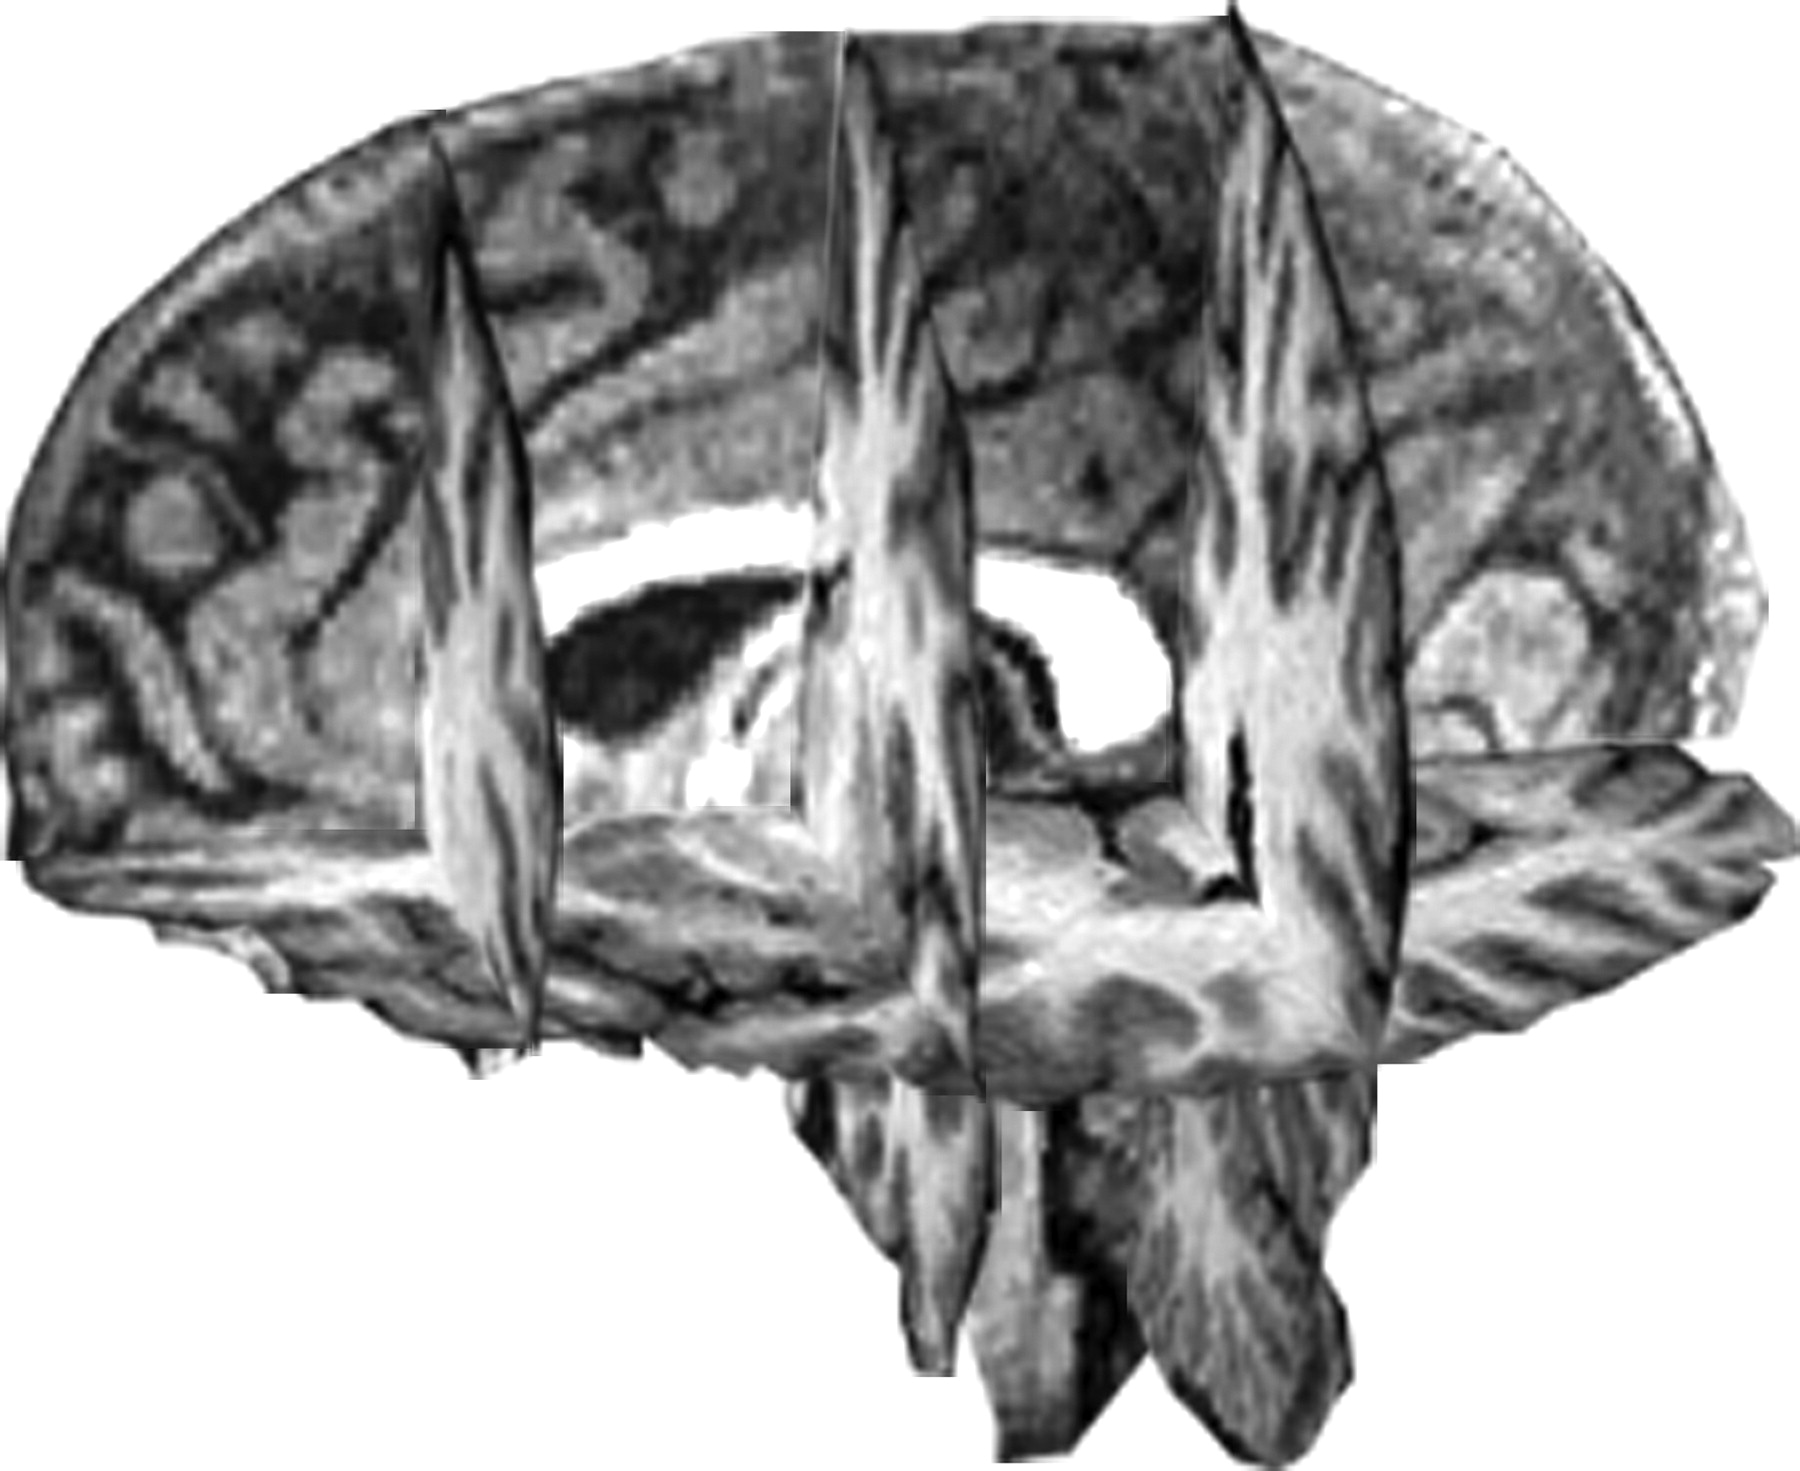 Differential Patterns of Cognitive Decline in Anterior and